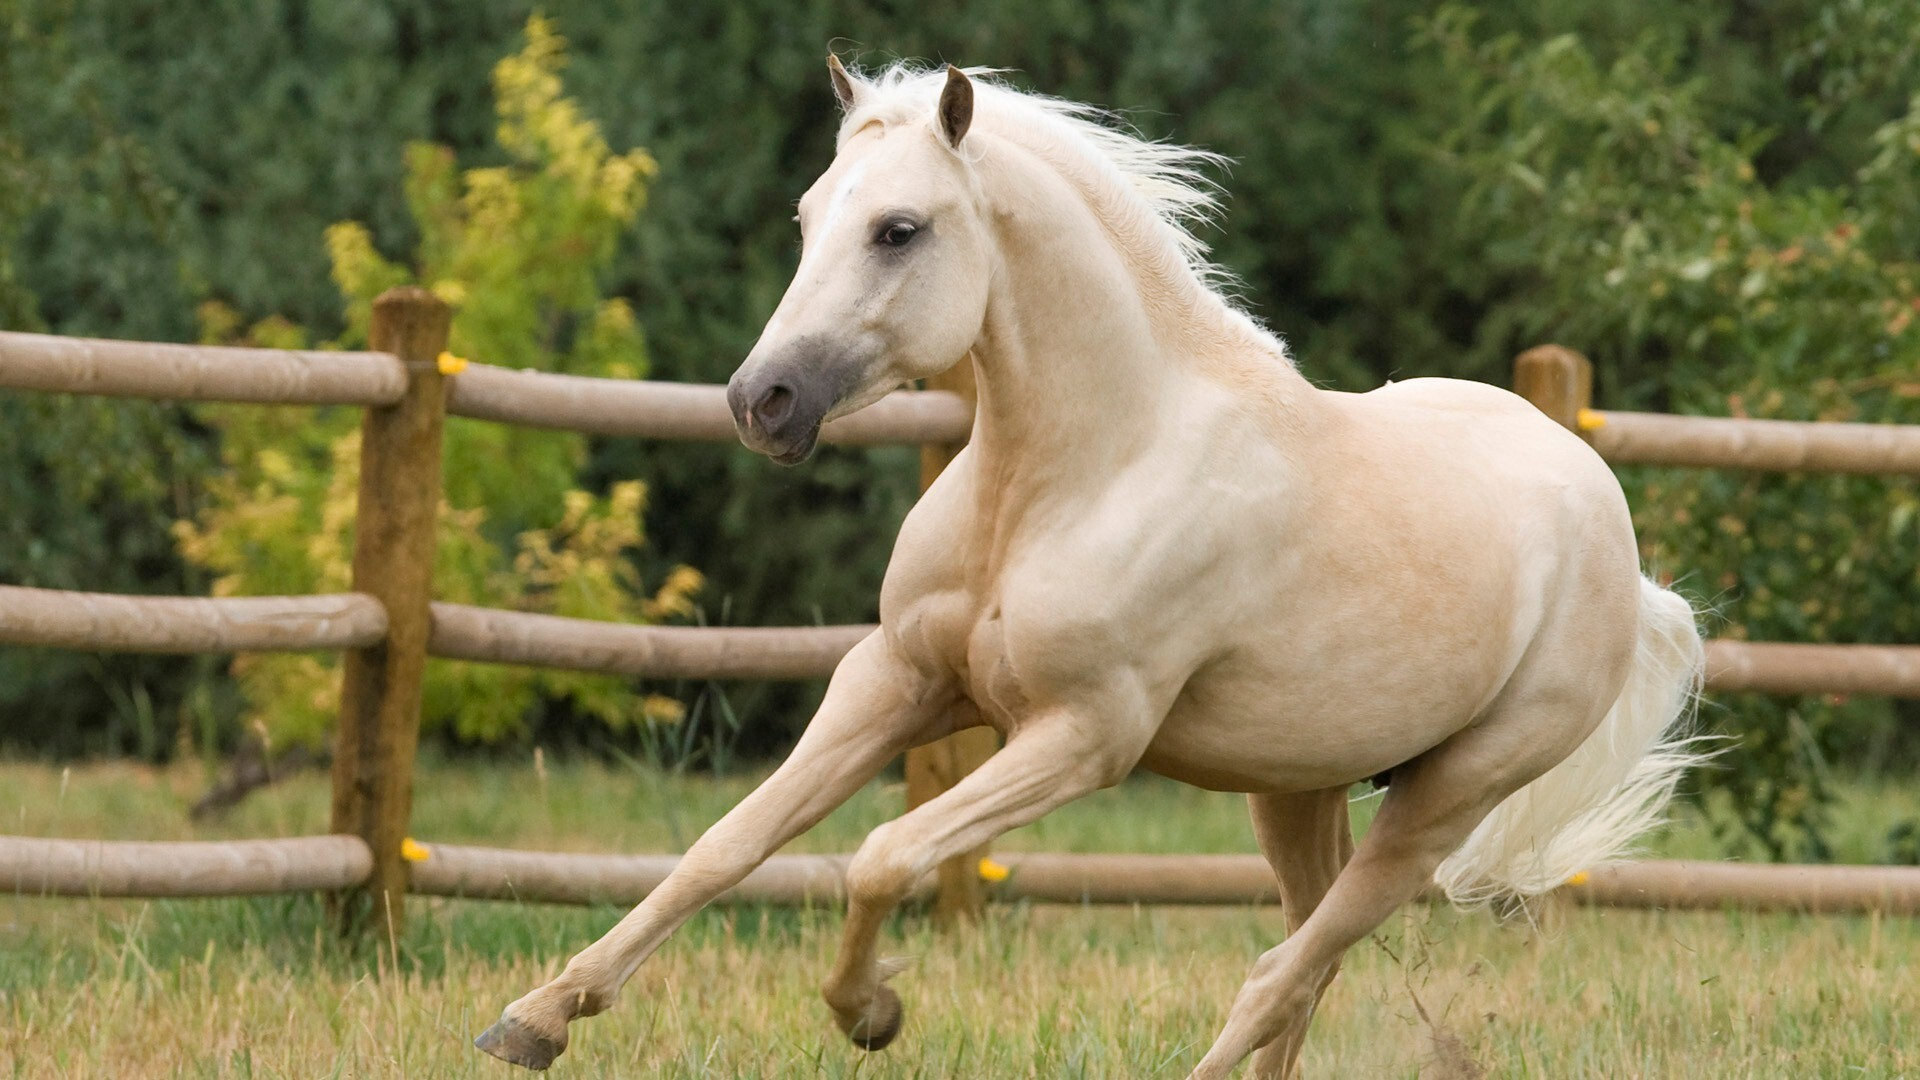 Lovely White Horse Running In Ground Hd Animal Pics Hd Wallpapers